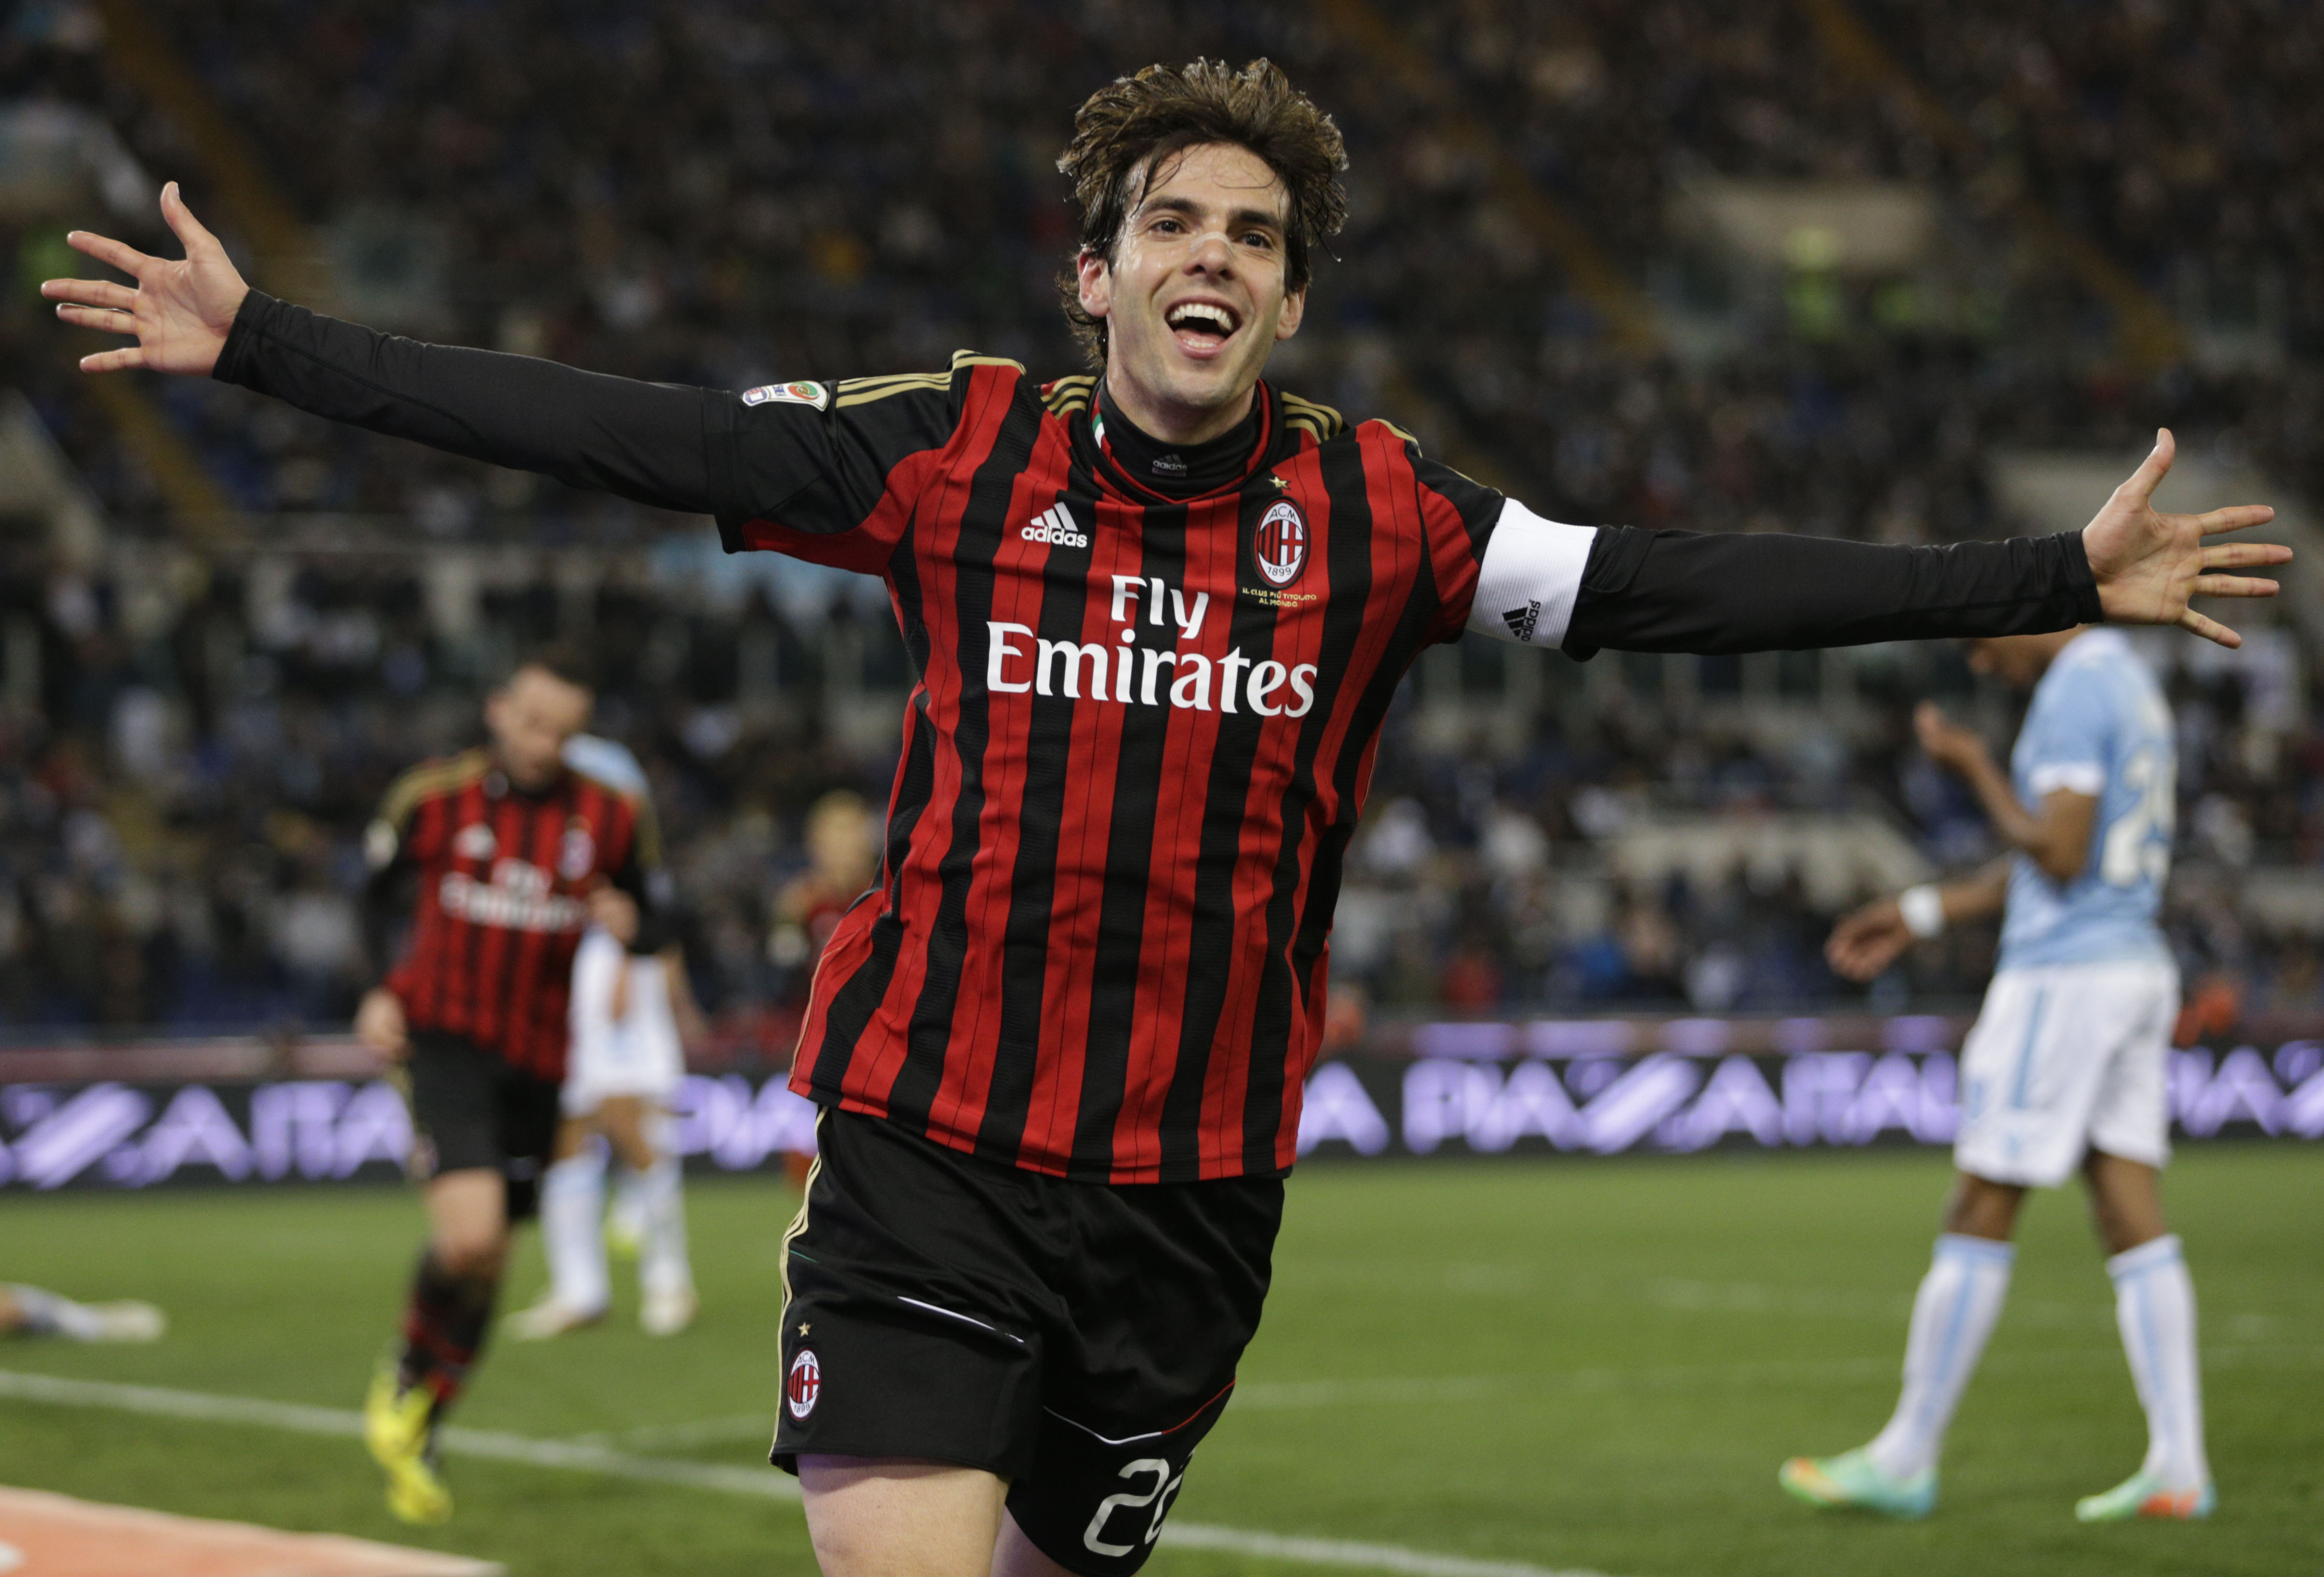 Kaka released by AC Milan Brazilian star will sign with MLS